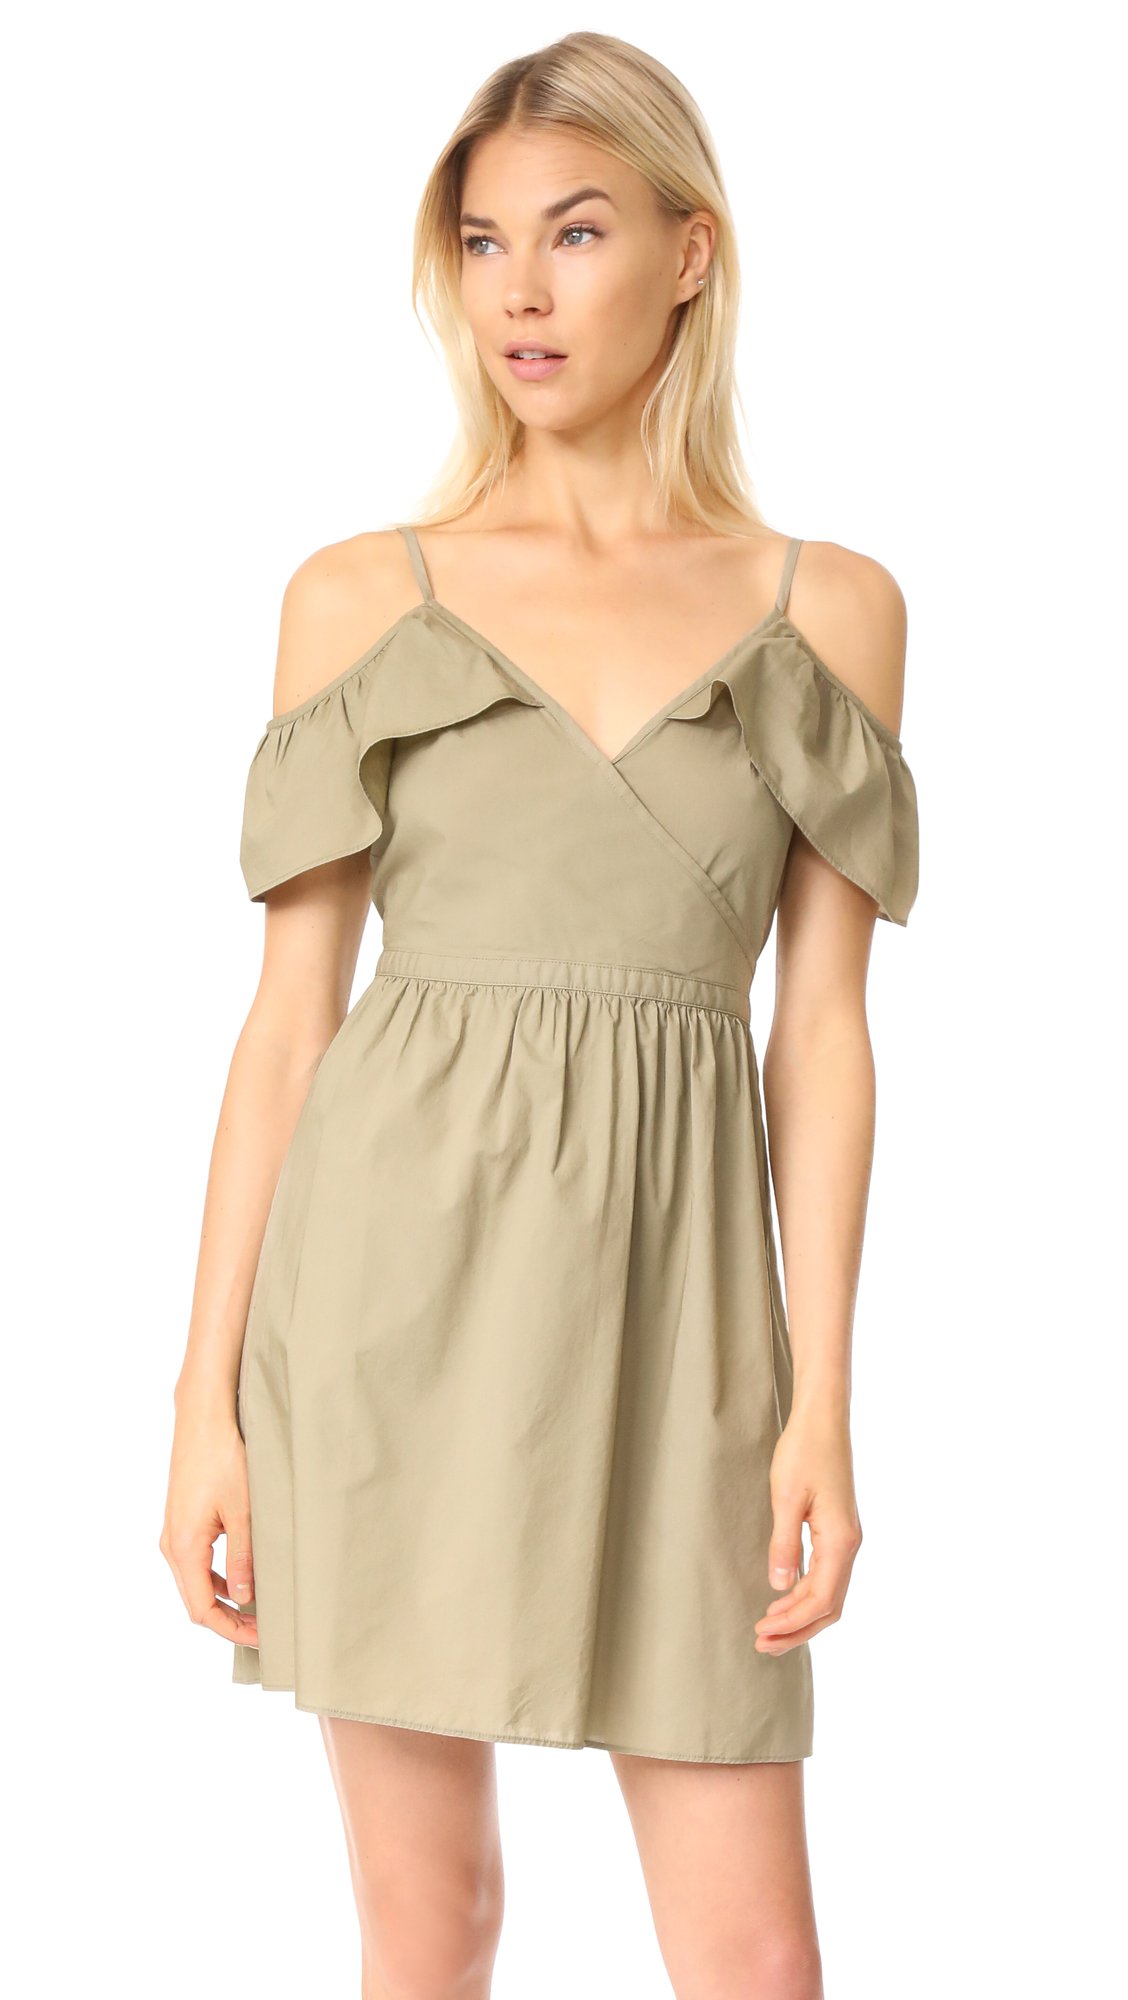 Madewell Khaki Cold Shoulder Dress - Ash Green